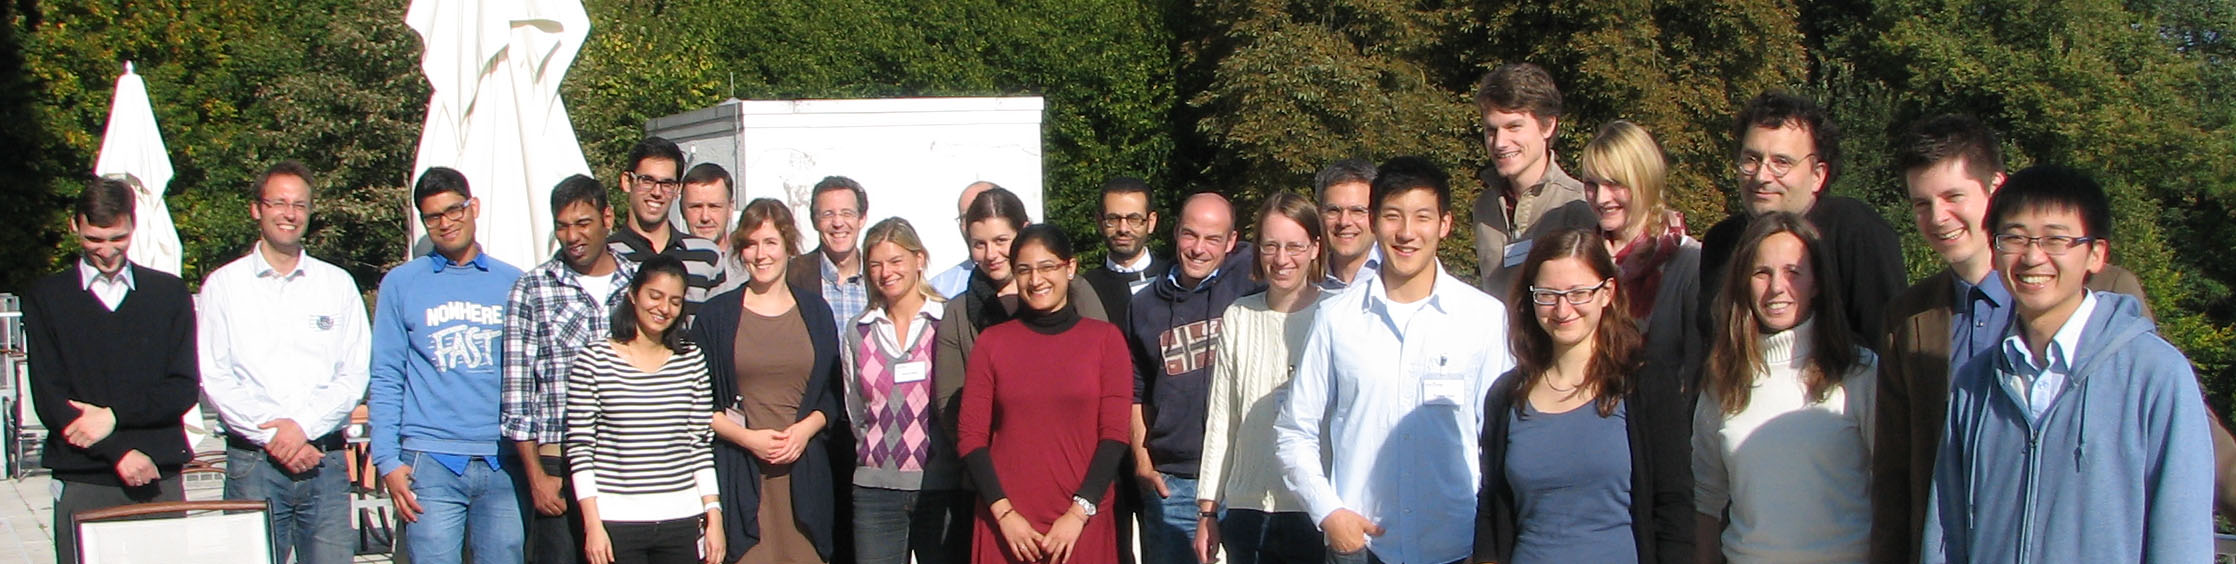 "Members of the Research Training Group ""Genes, Environment and Inflammation"""